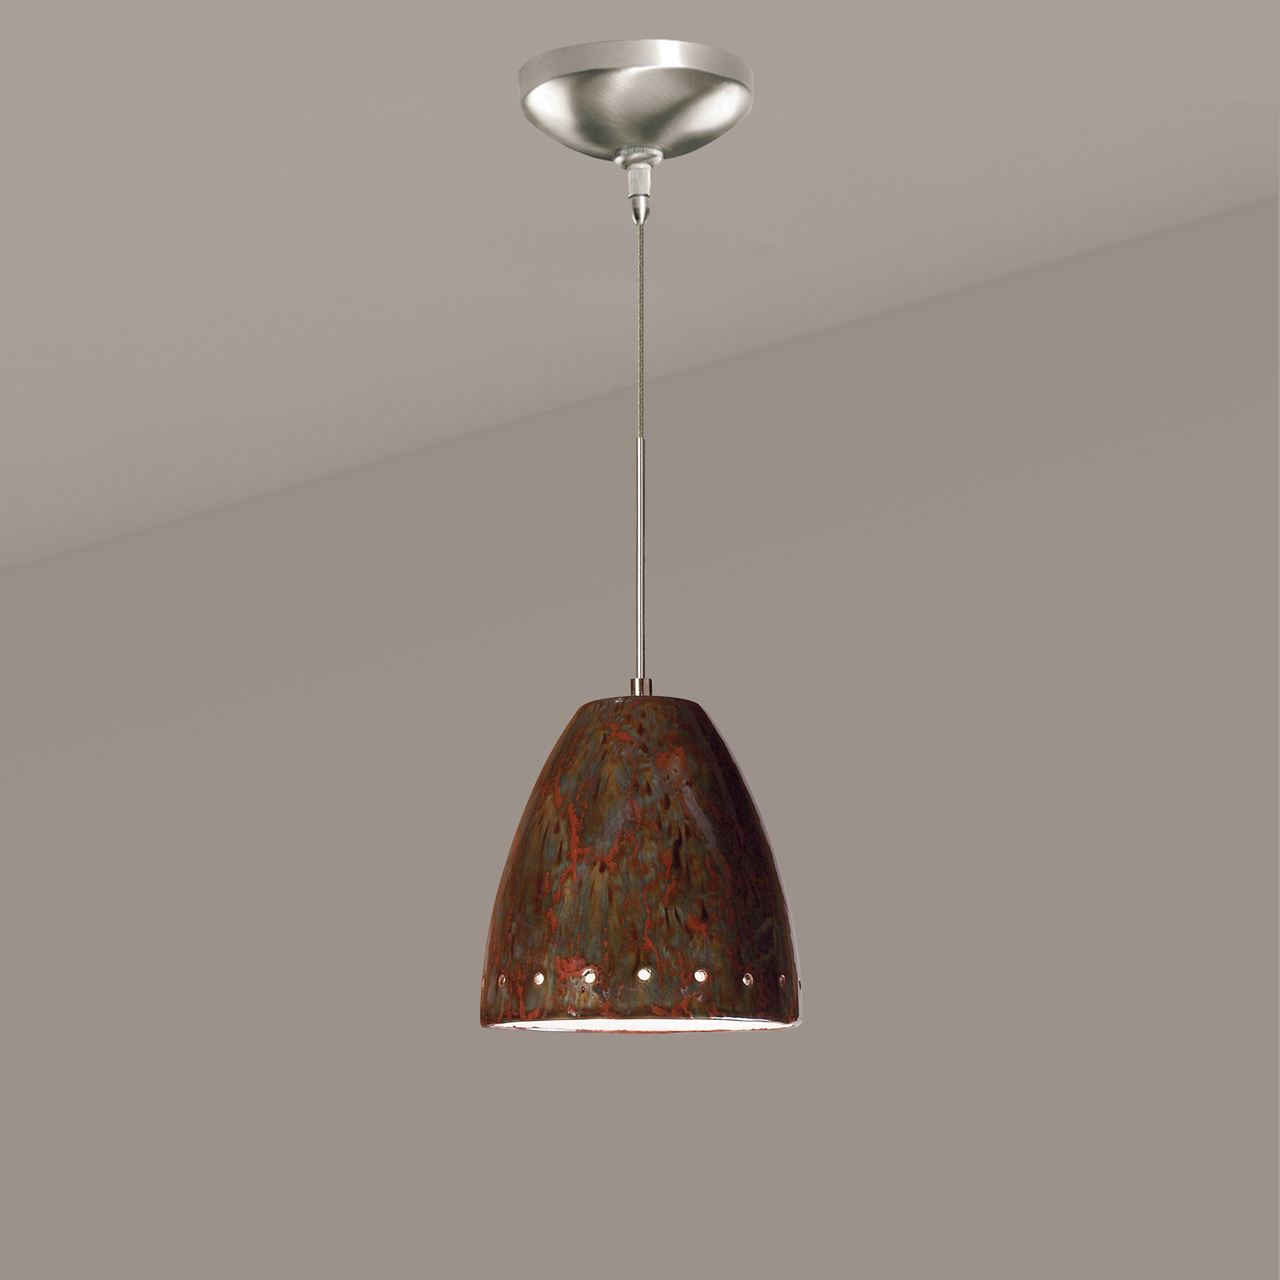 Picture of A19 Ceramic Pendant Light   Realm